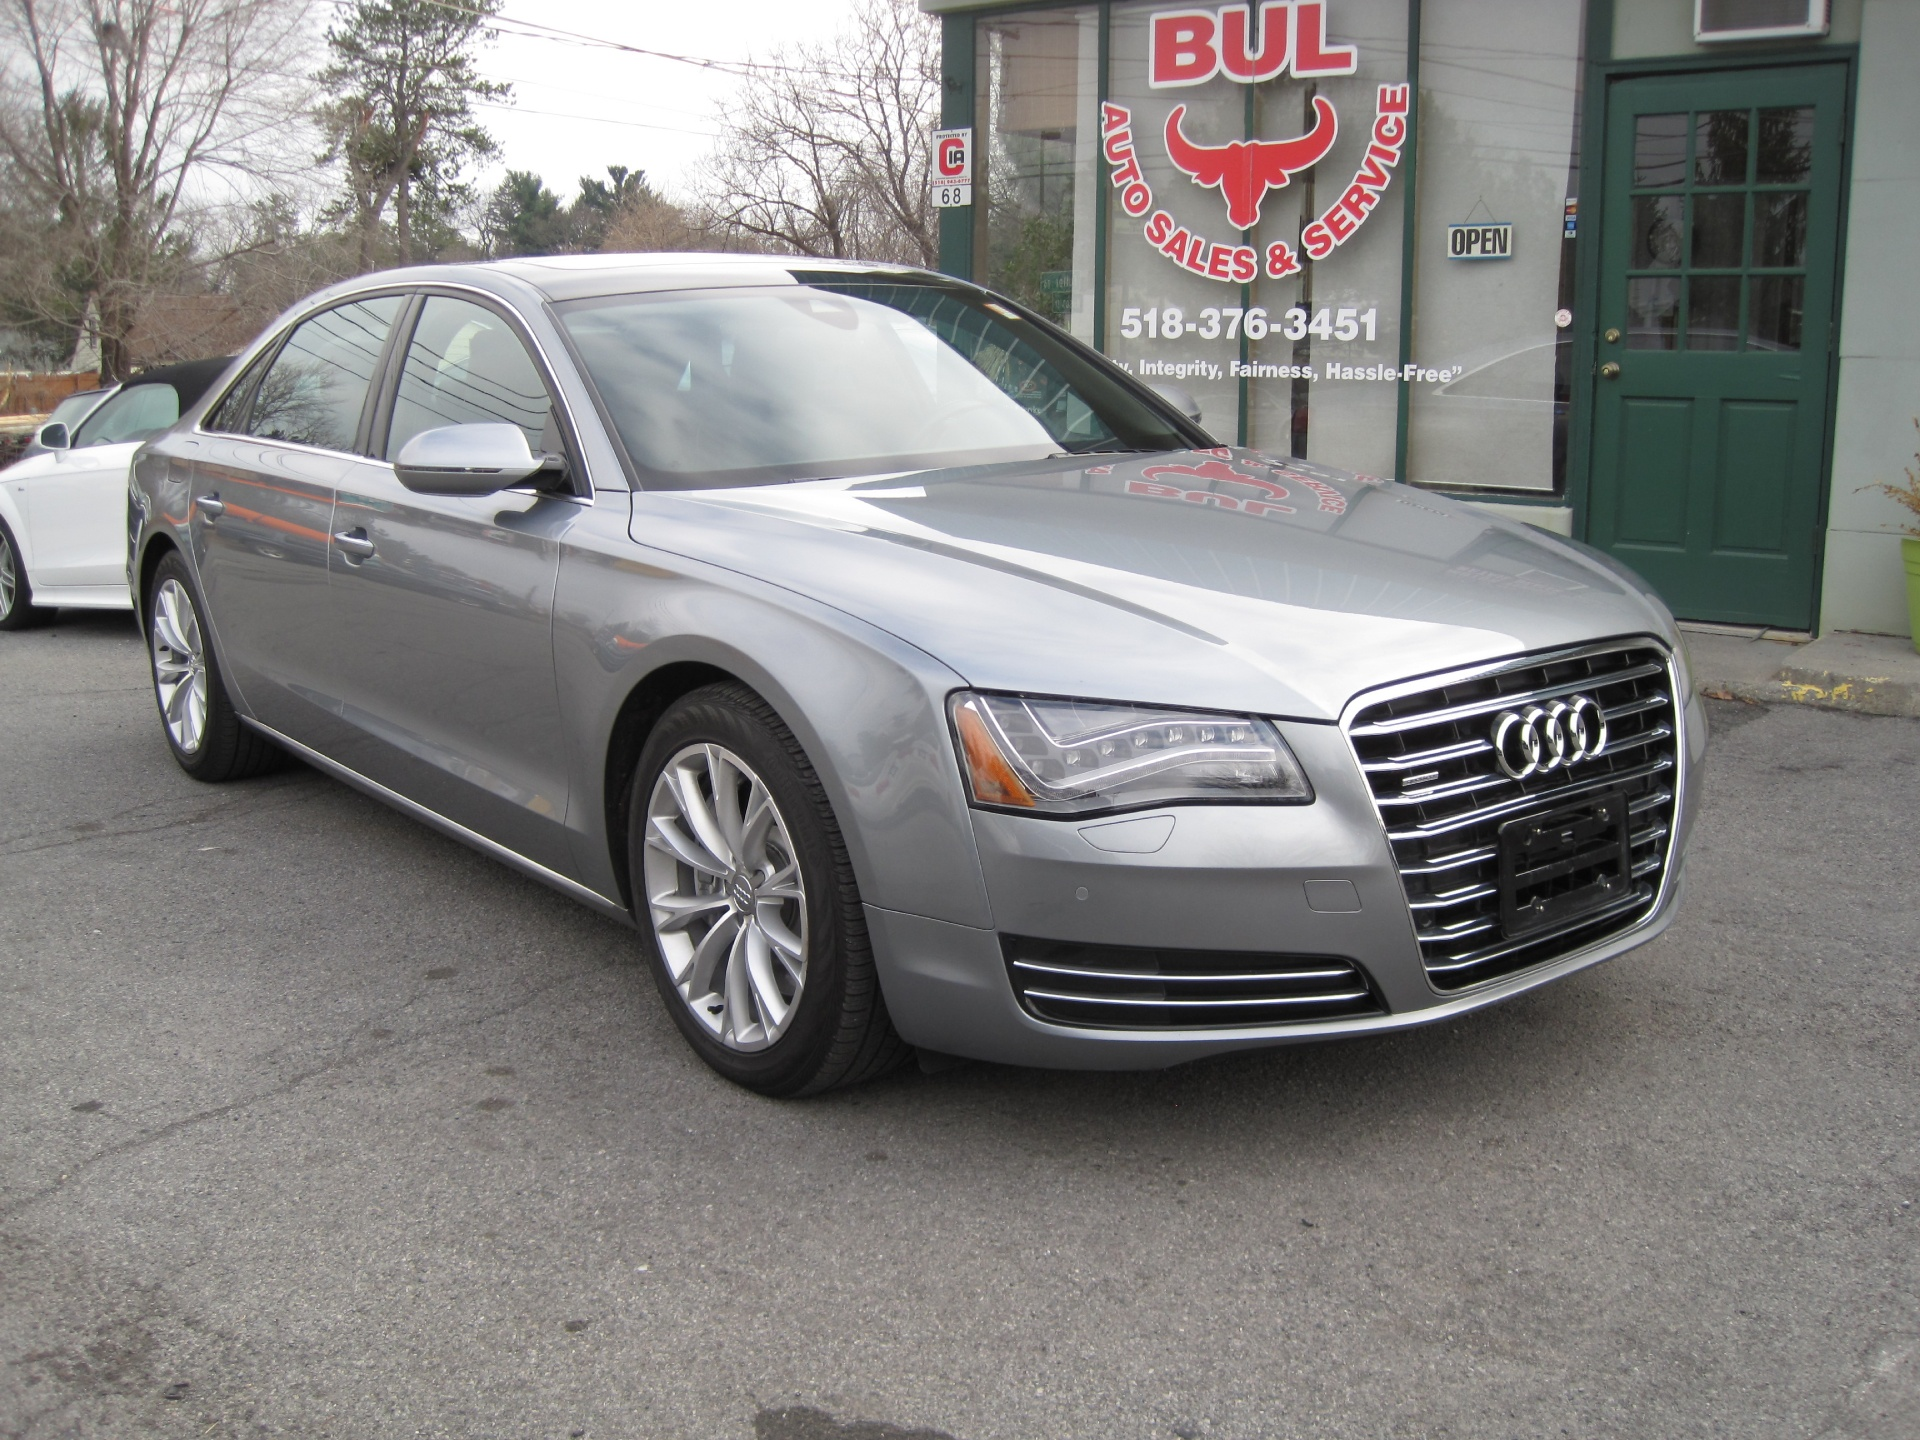 2011 audi a8 l quattro spotless superb condition like new. Black Bedroom Furniture Sets. Home Design Ideas